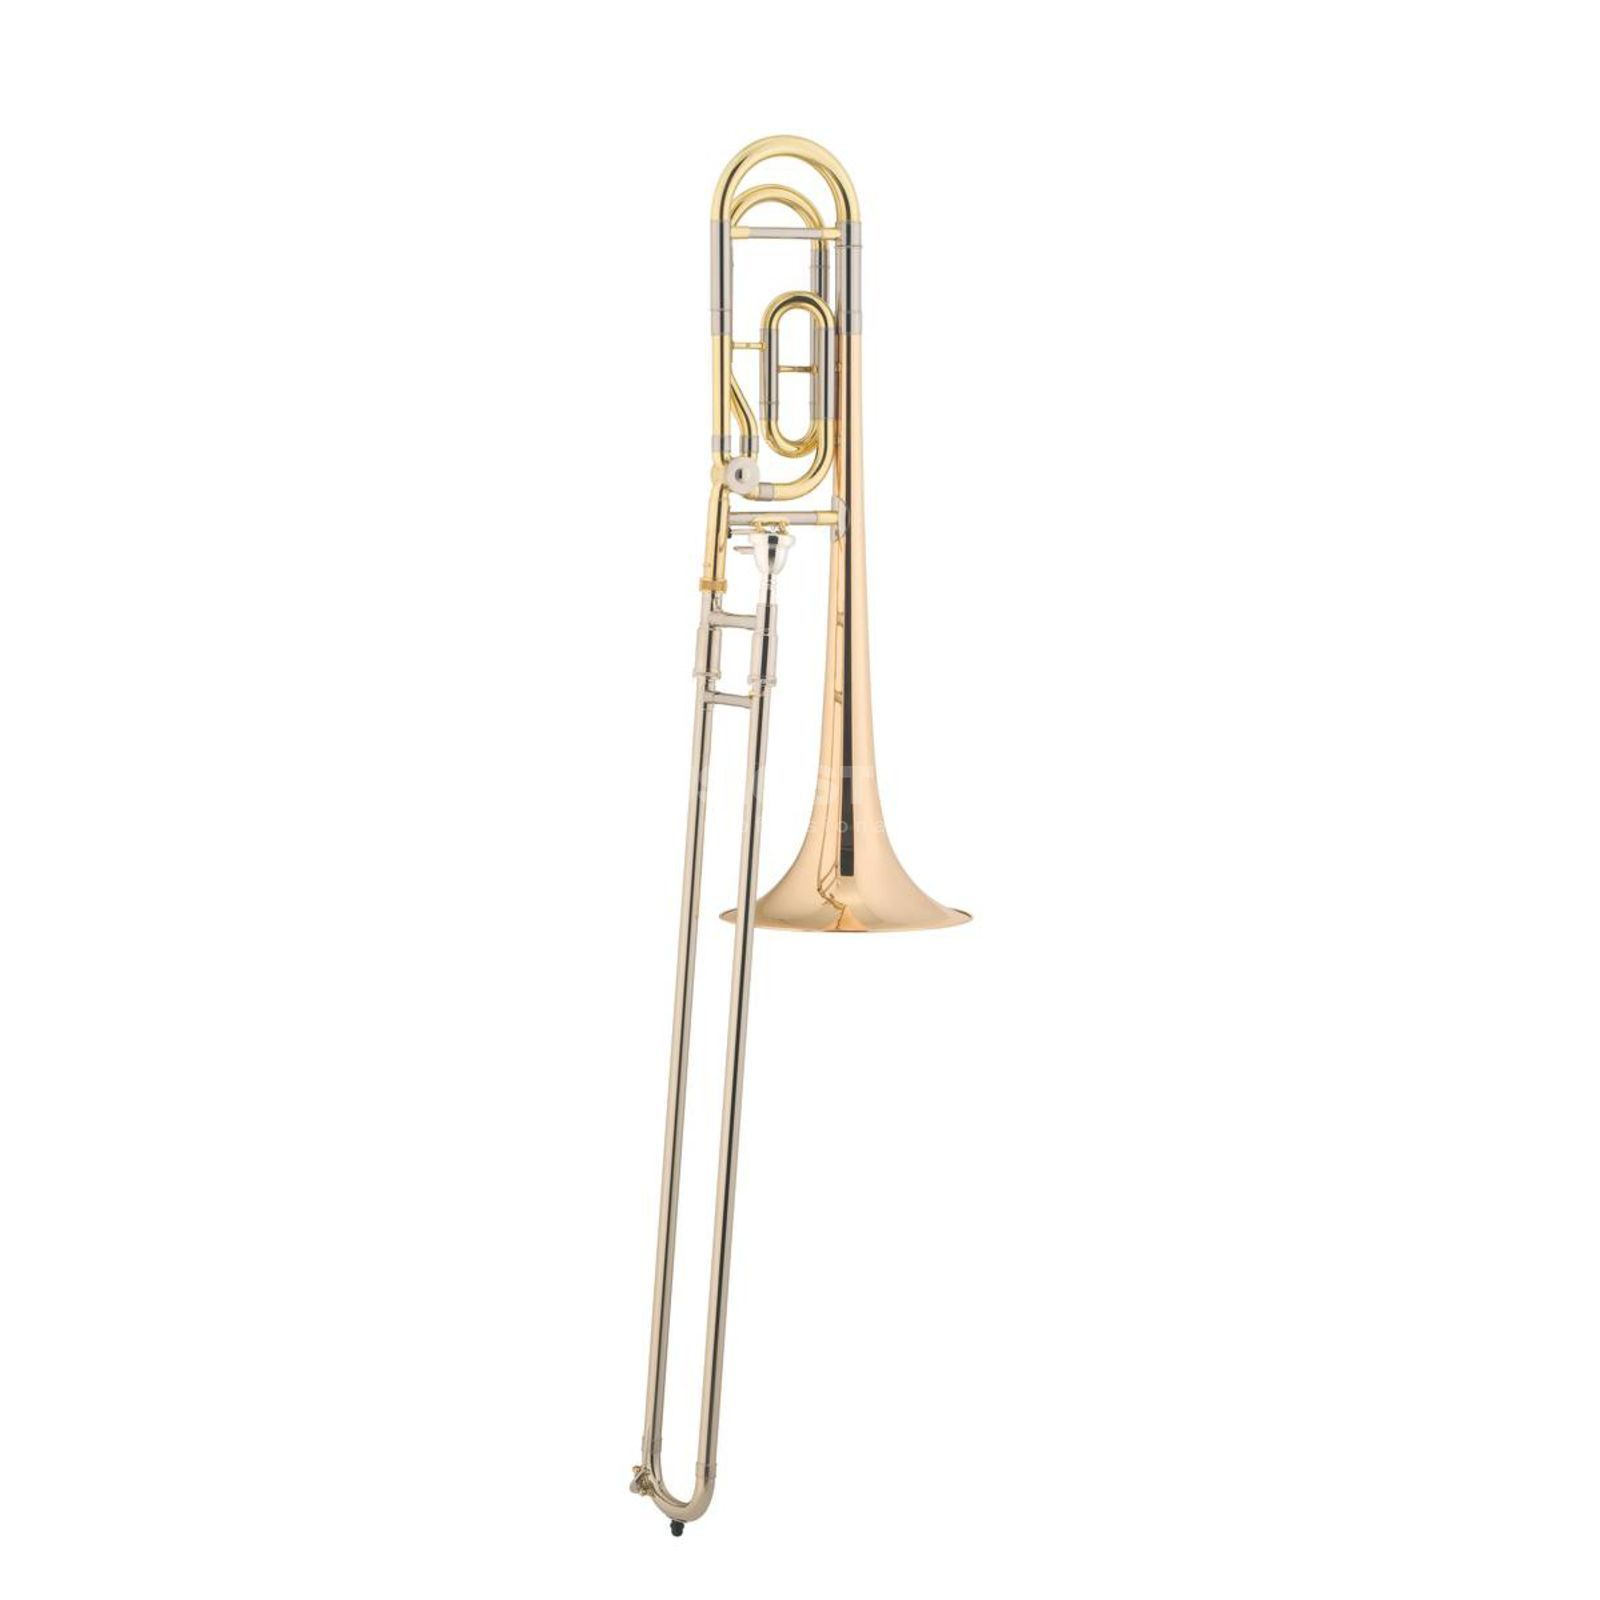 Jupiter JP-636RL-Q Bb/F Tenor Trombone Incl. Case and Accessories Product Image